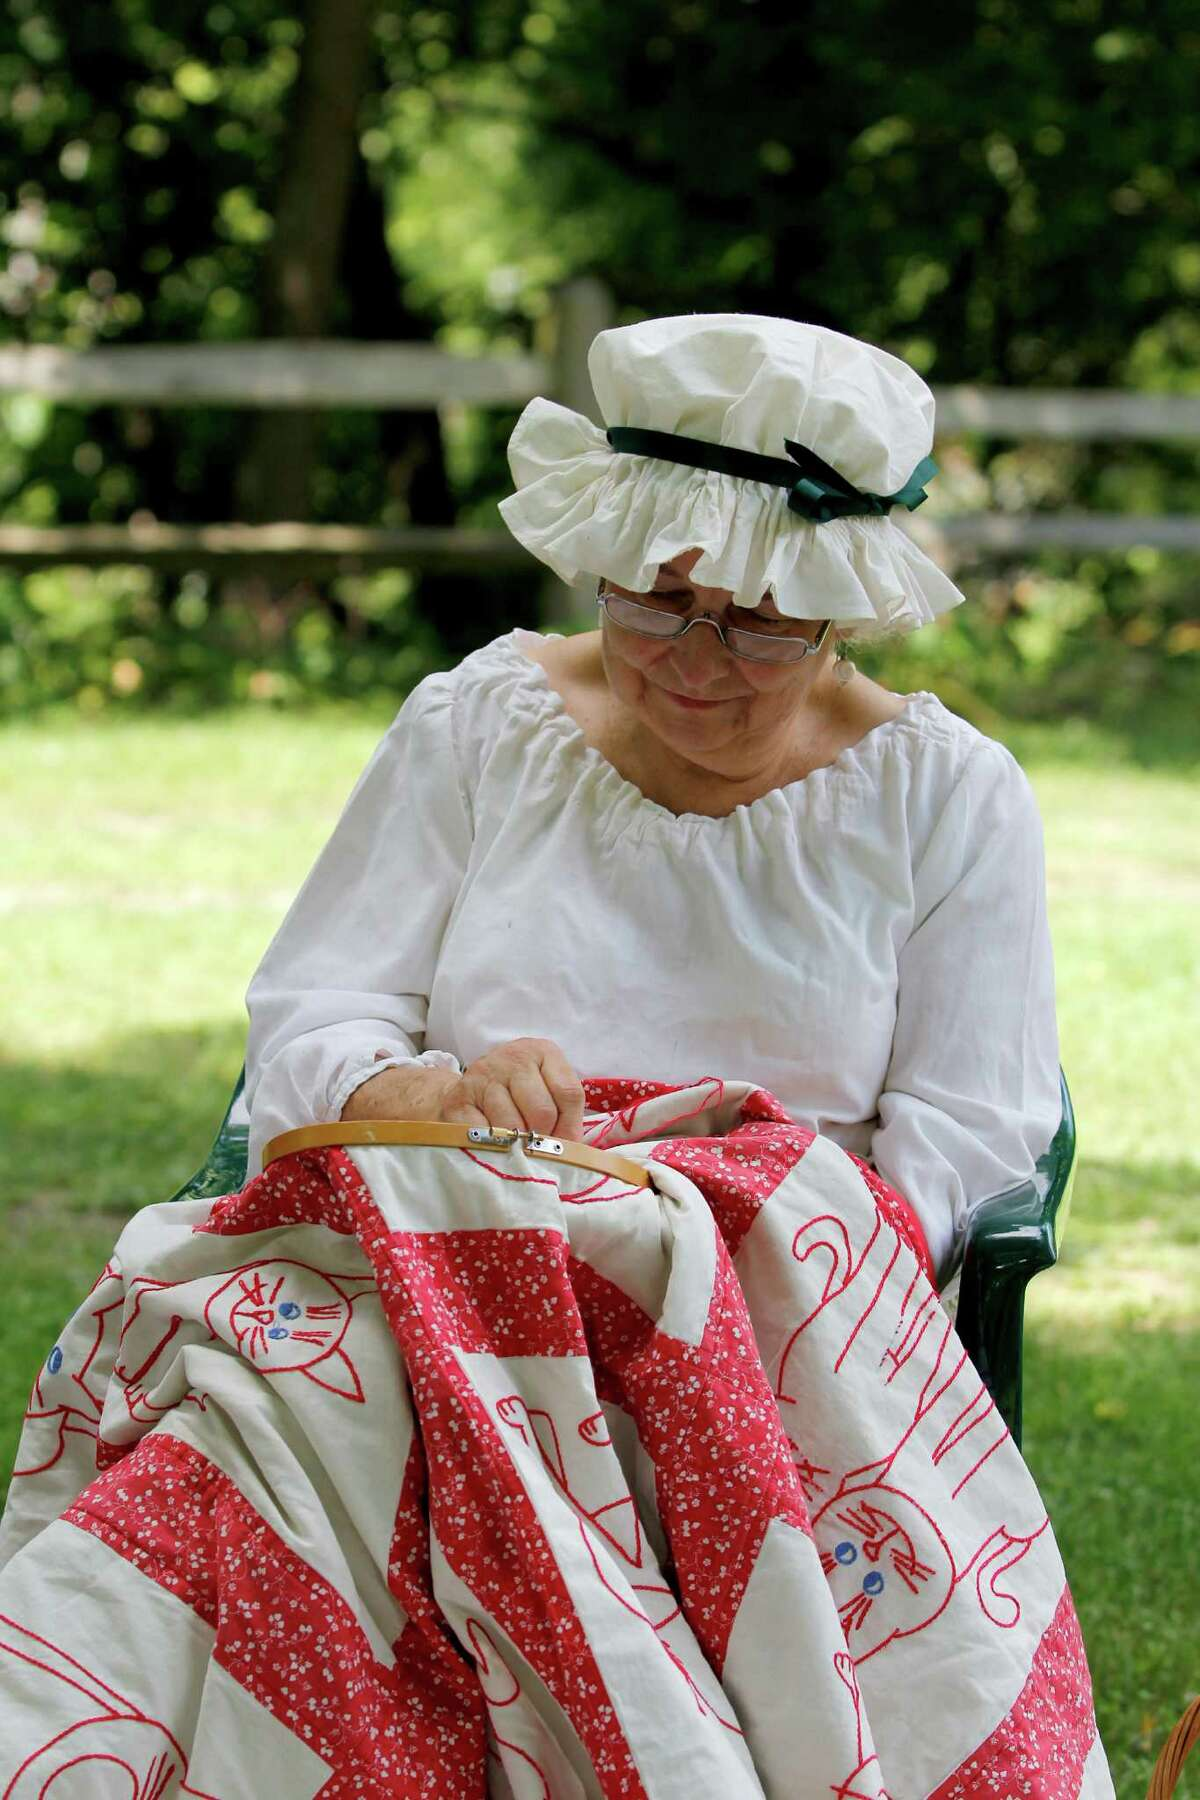 Gay Gamage of Saratoga repairs the embroidering on a quilt during 18th Century Day at the Historic Schuyler House on Sunday Aug. 12, 2012 in Schuylerville, N.Y. (Dan Little/Special to the Times Union)